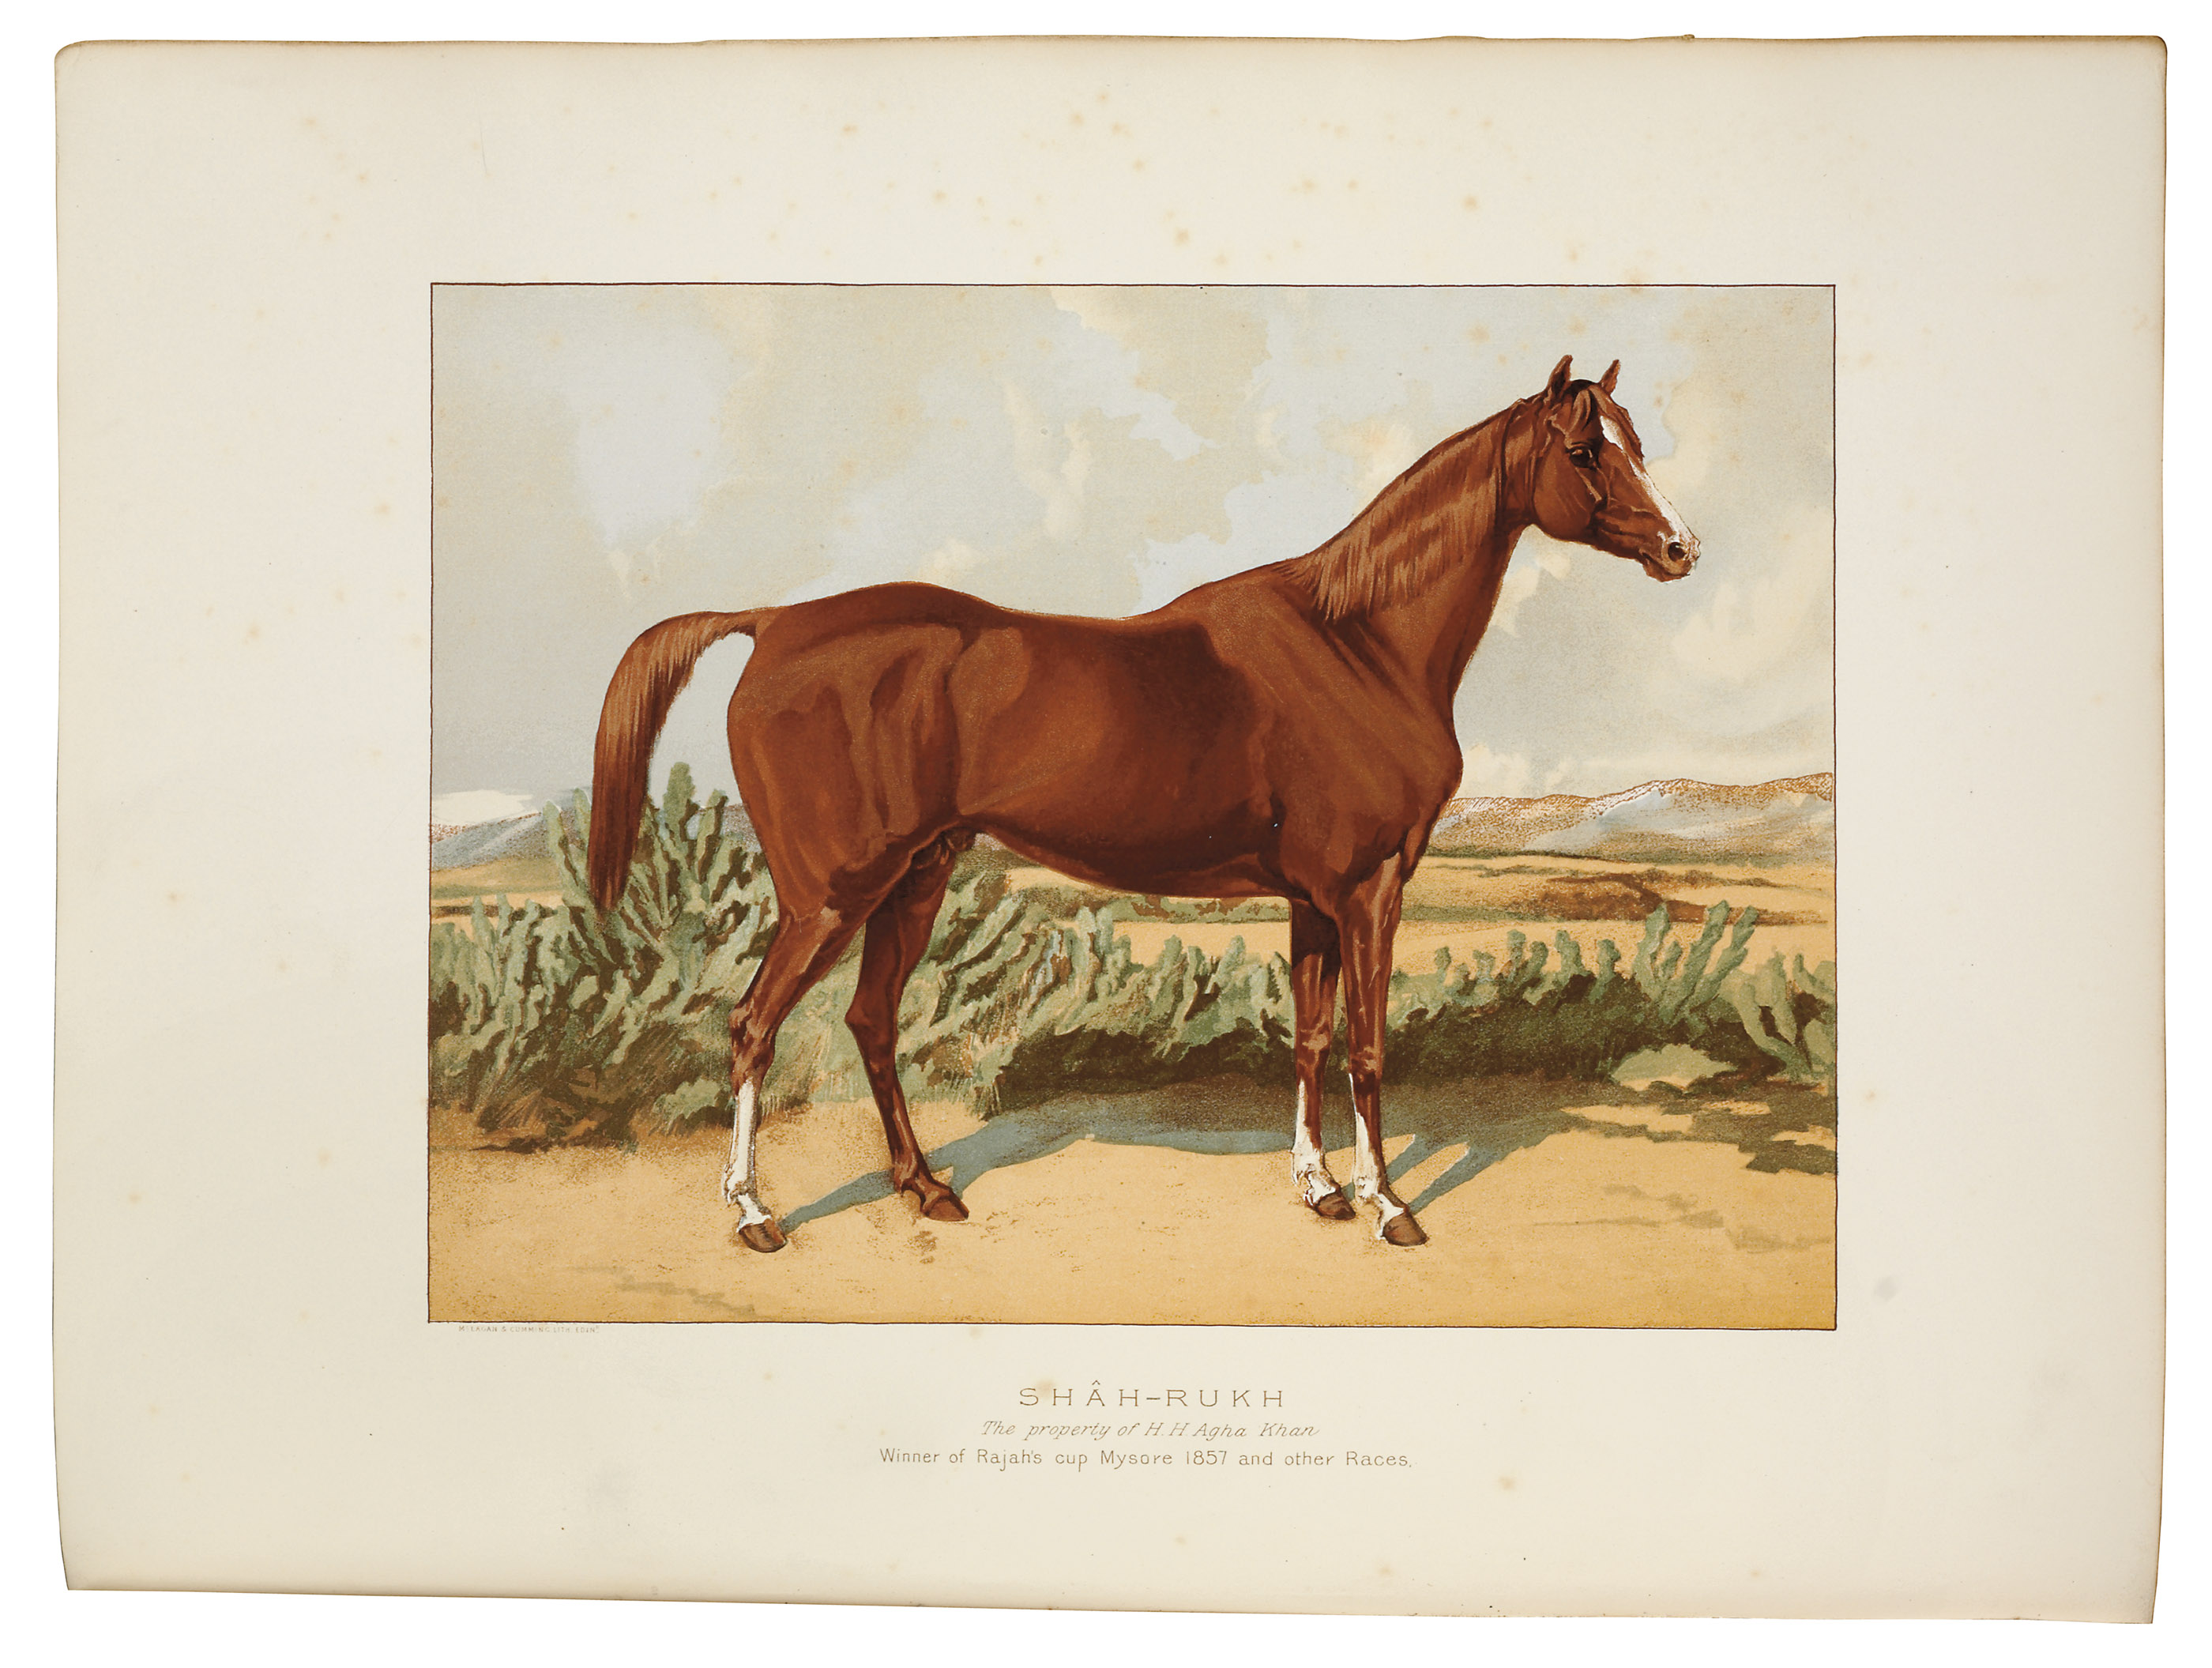 TWEEDIE, William. The Arabian Horse: His Country and People. Edinburgh: William Blackwood and Sons, 1894. 4° (340 x 253mm). Title printed in red and black, plates and illustrations, folding map in rear pocket. (Occasional spotting, a few creases, folding map with a few small clean tears.) Original black half morocco gilt, top edge gilt, others uncut, modern cloth slipcase (a little rubbed and scuffed).